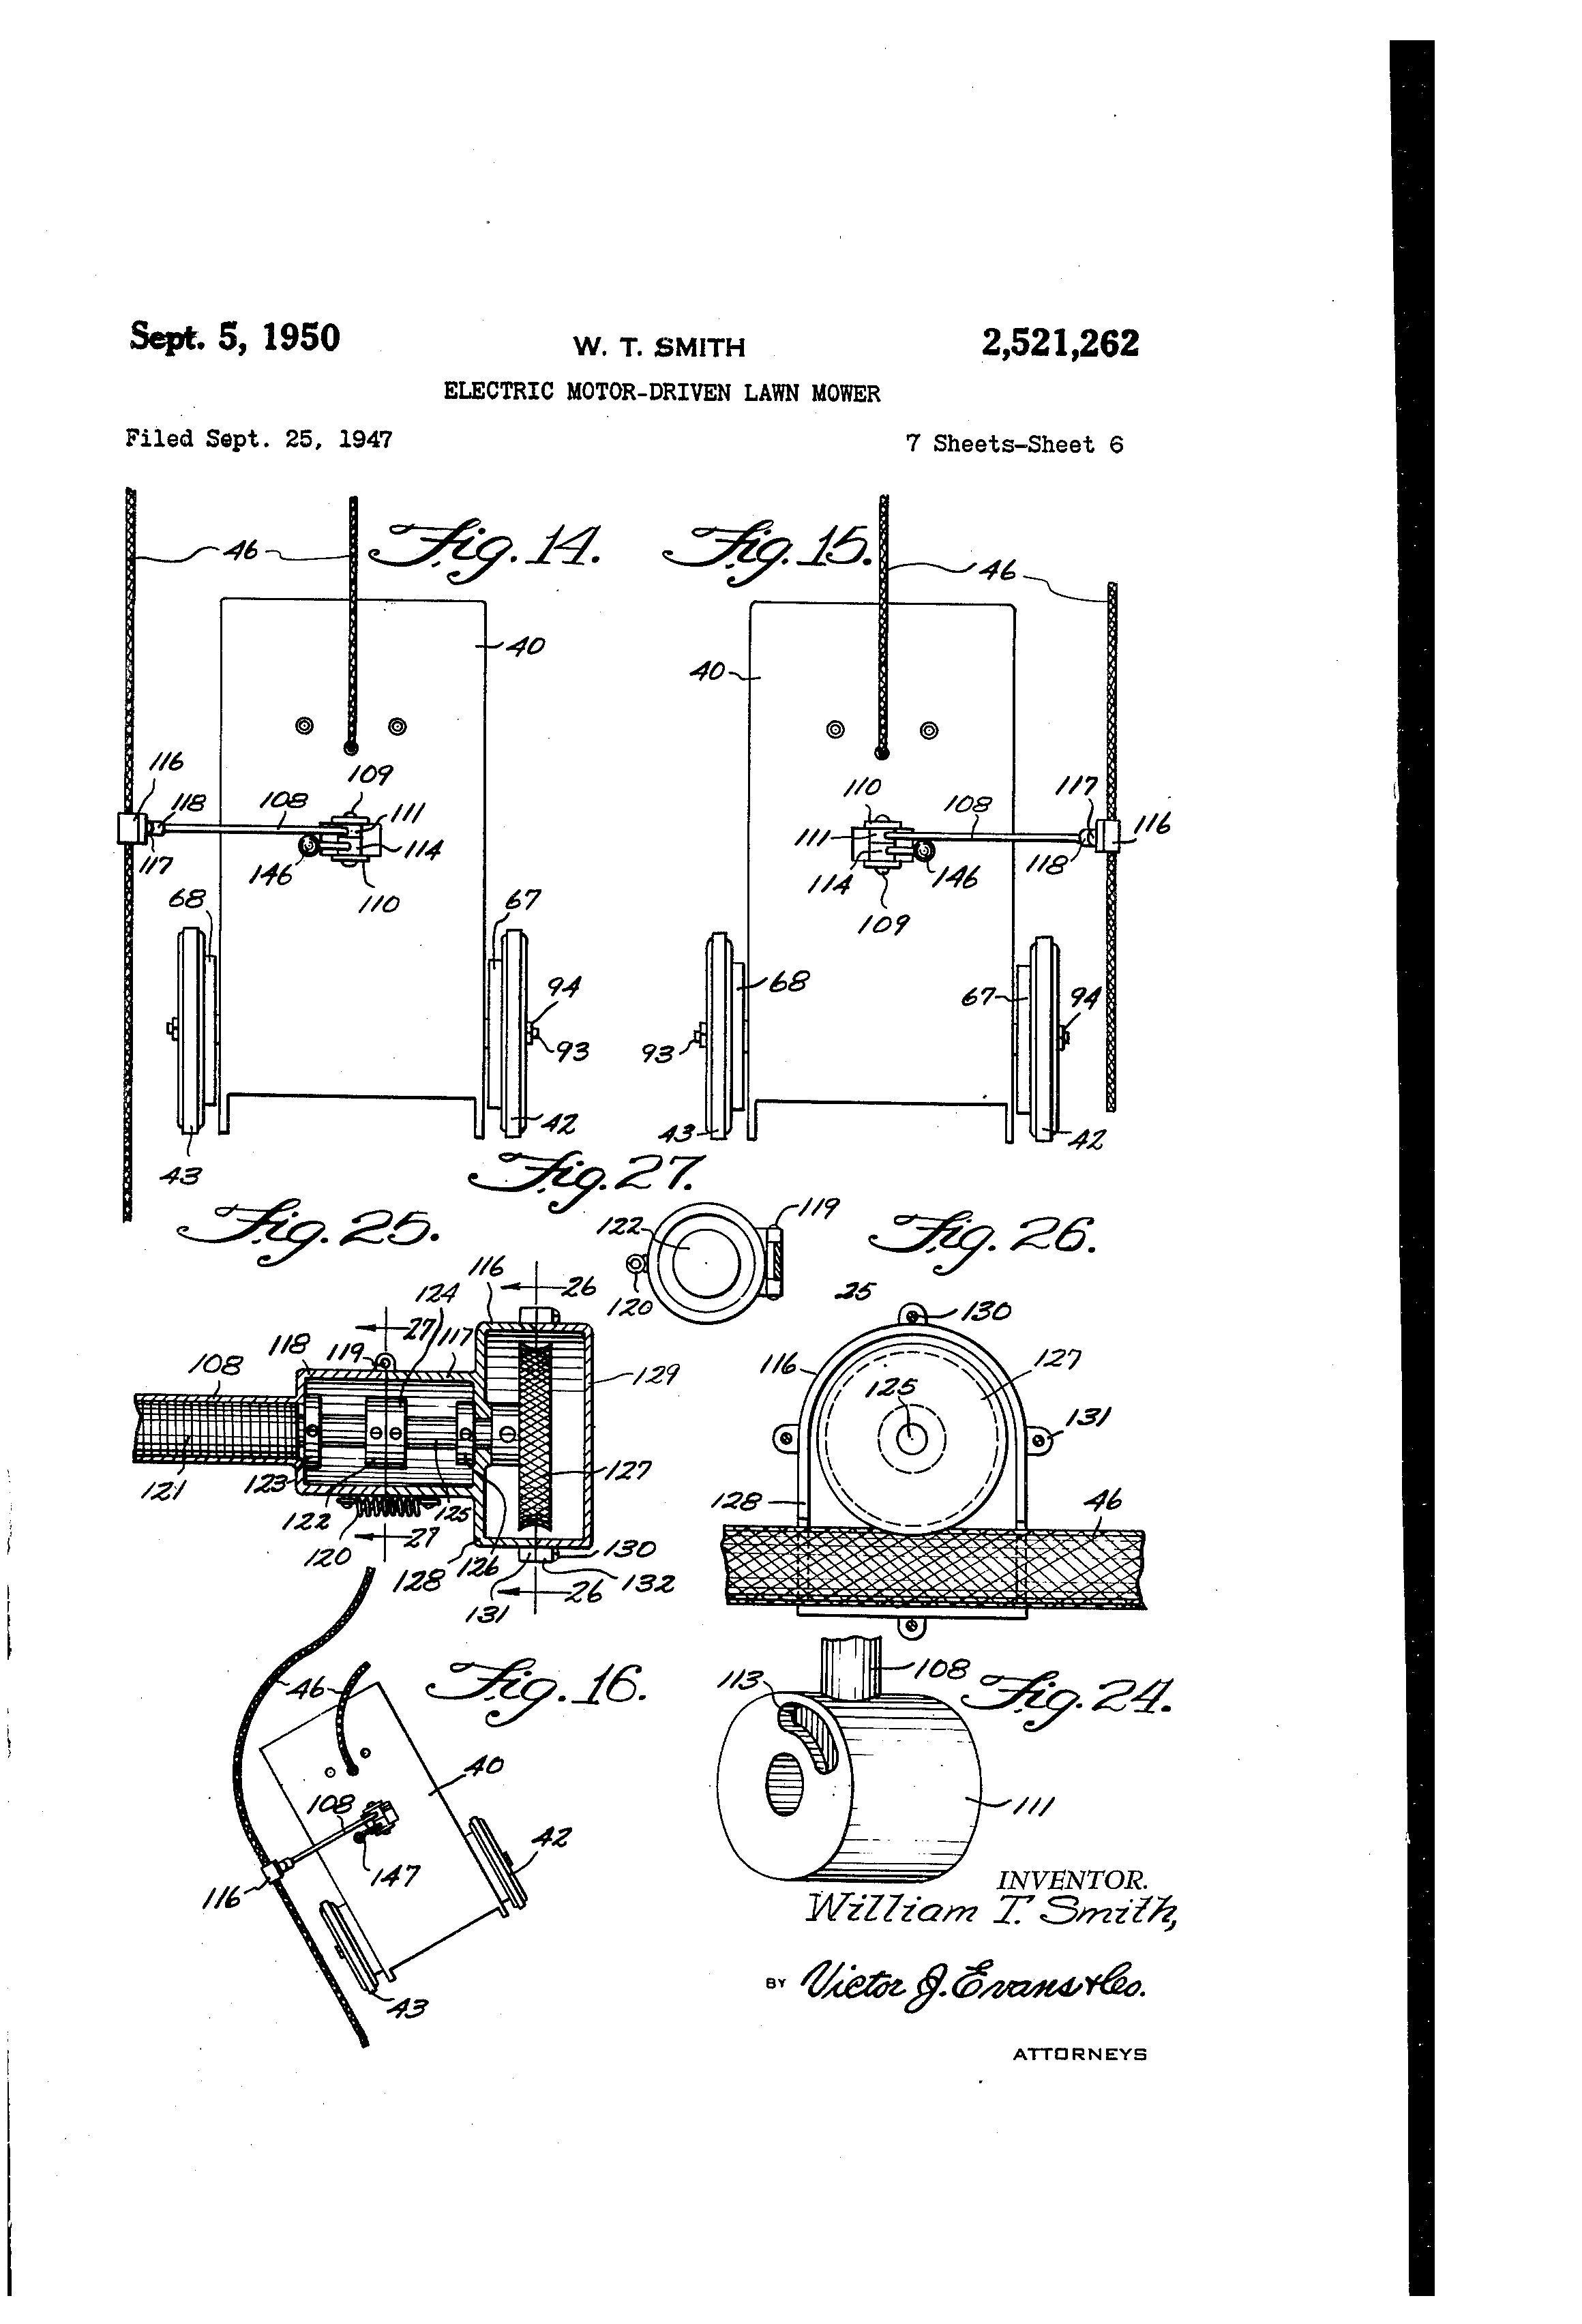 Riding Mower Wiring Diagram For John Deere Sabre The White Lawn Wolf Electric And Patent Us5540037 Control System Drive